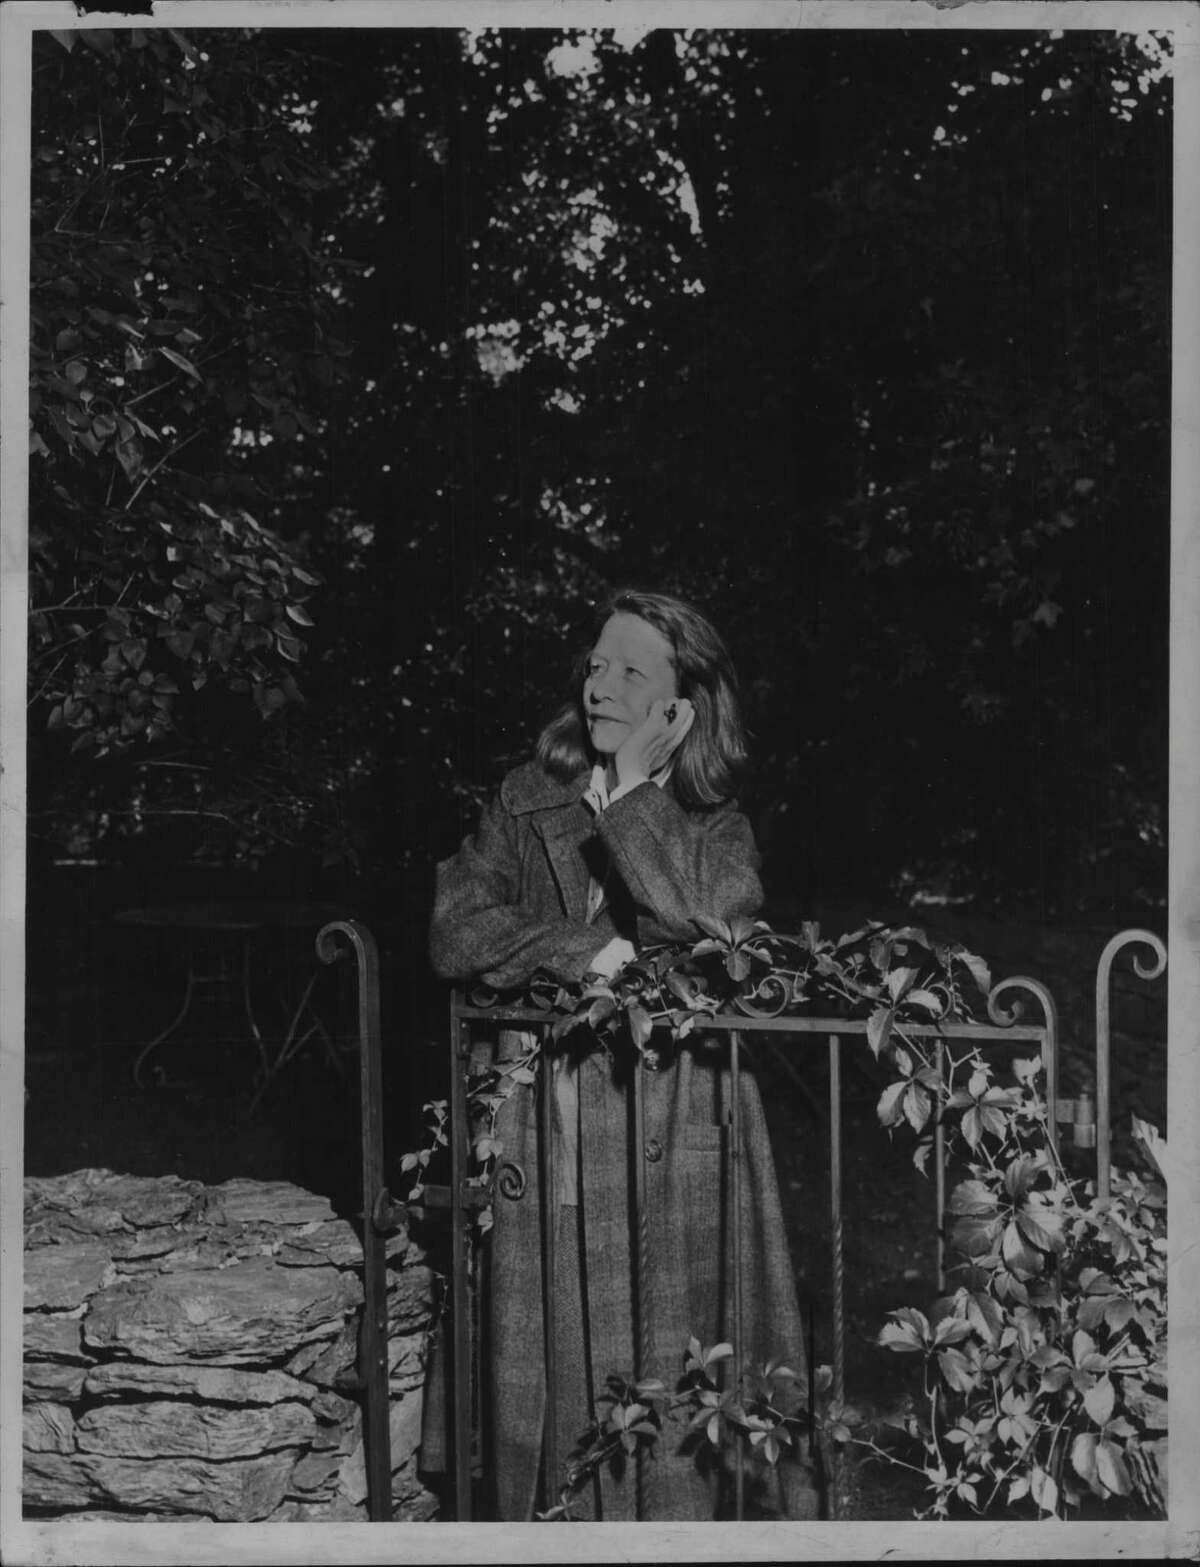 Edna St. Vincent Millay, New York poet, posed shortly before her death in 1950. (Times Union Archive)